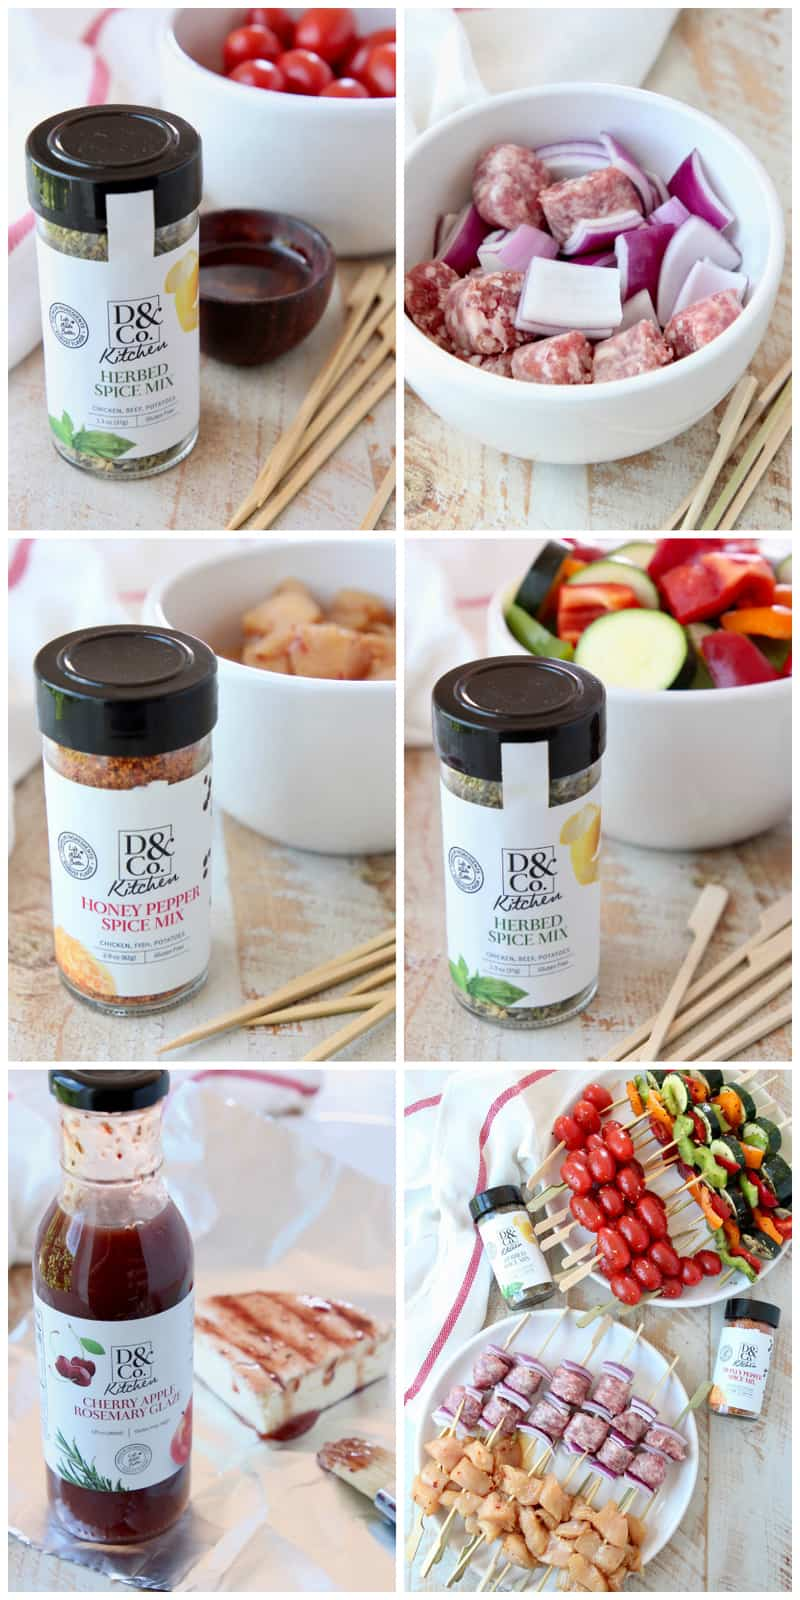 Collage of images showing how to make mini skewers